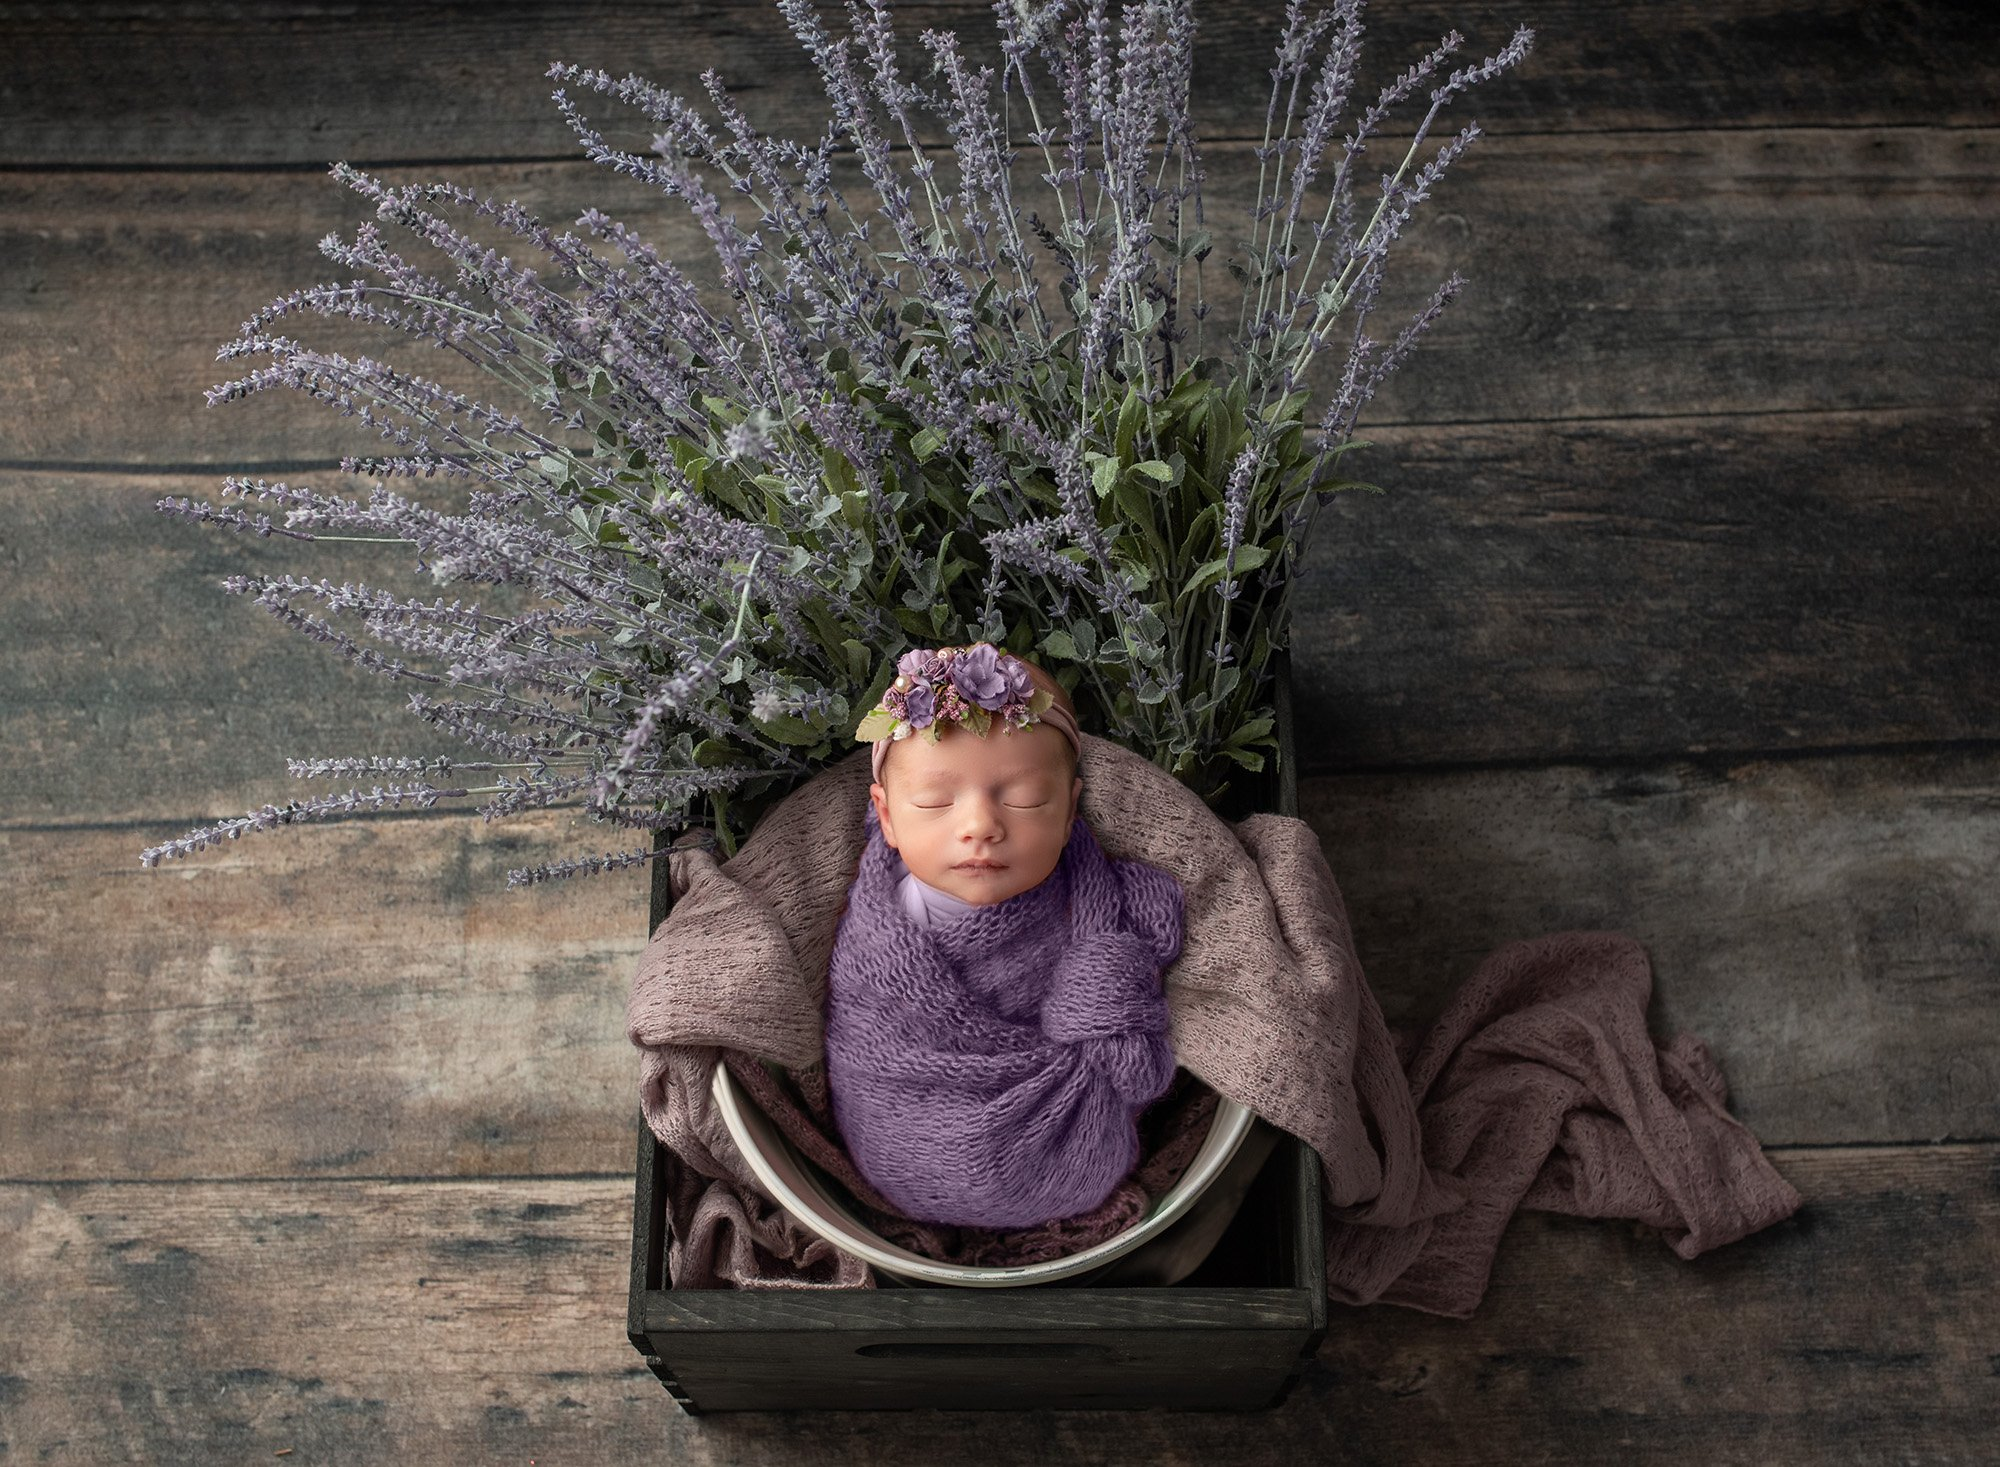 newborn baby girl swaddled in purple asleep in bucket with lots of lavender on wooden background